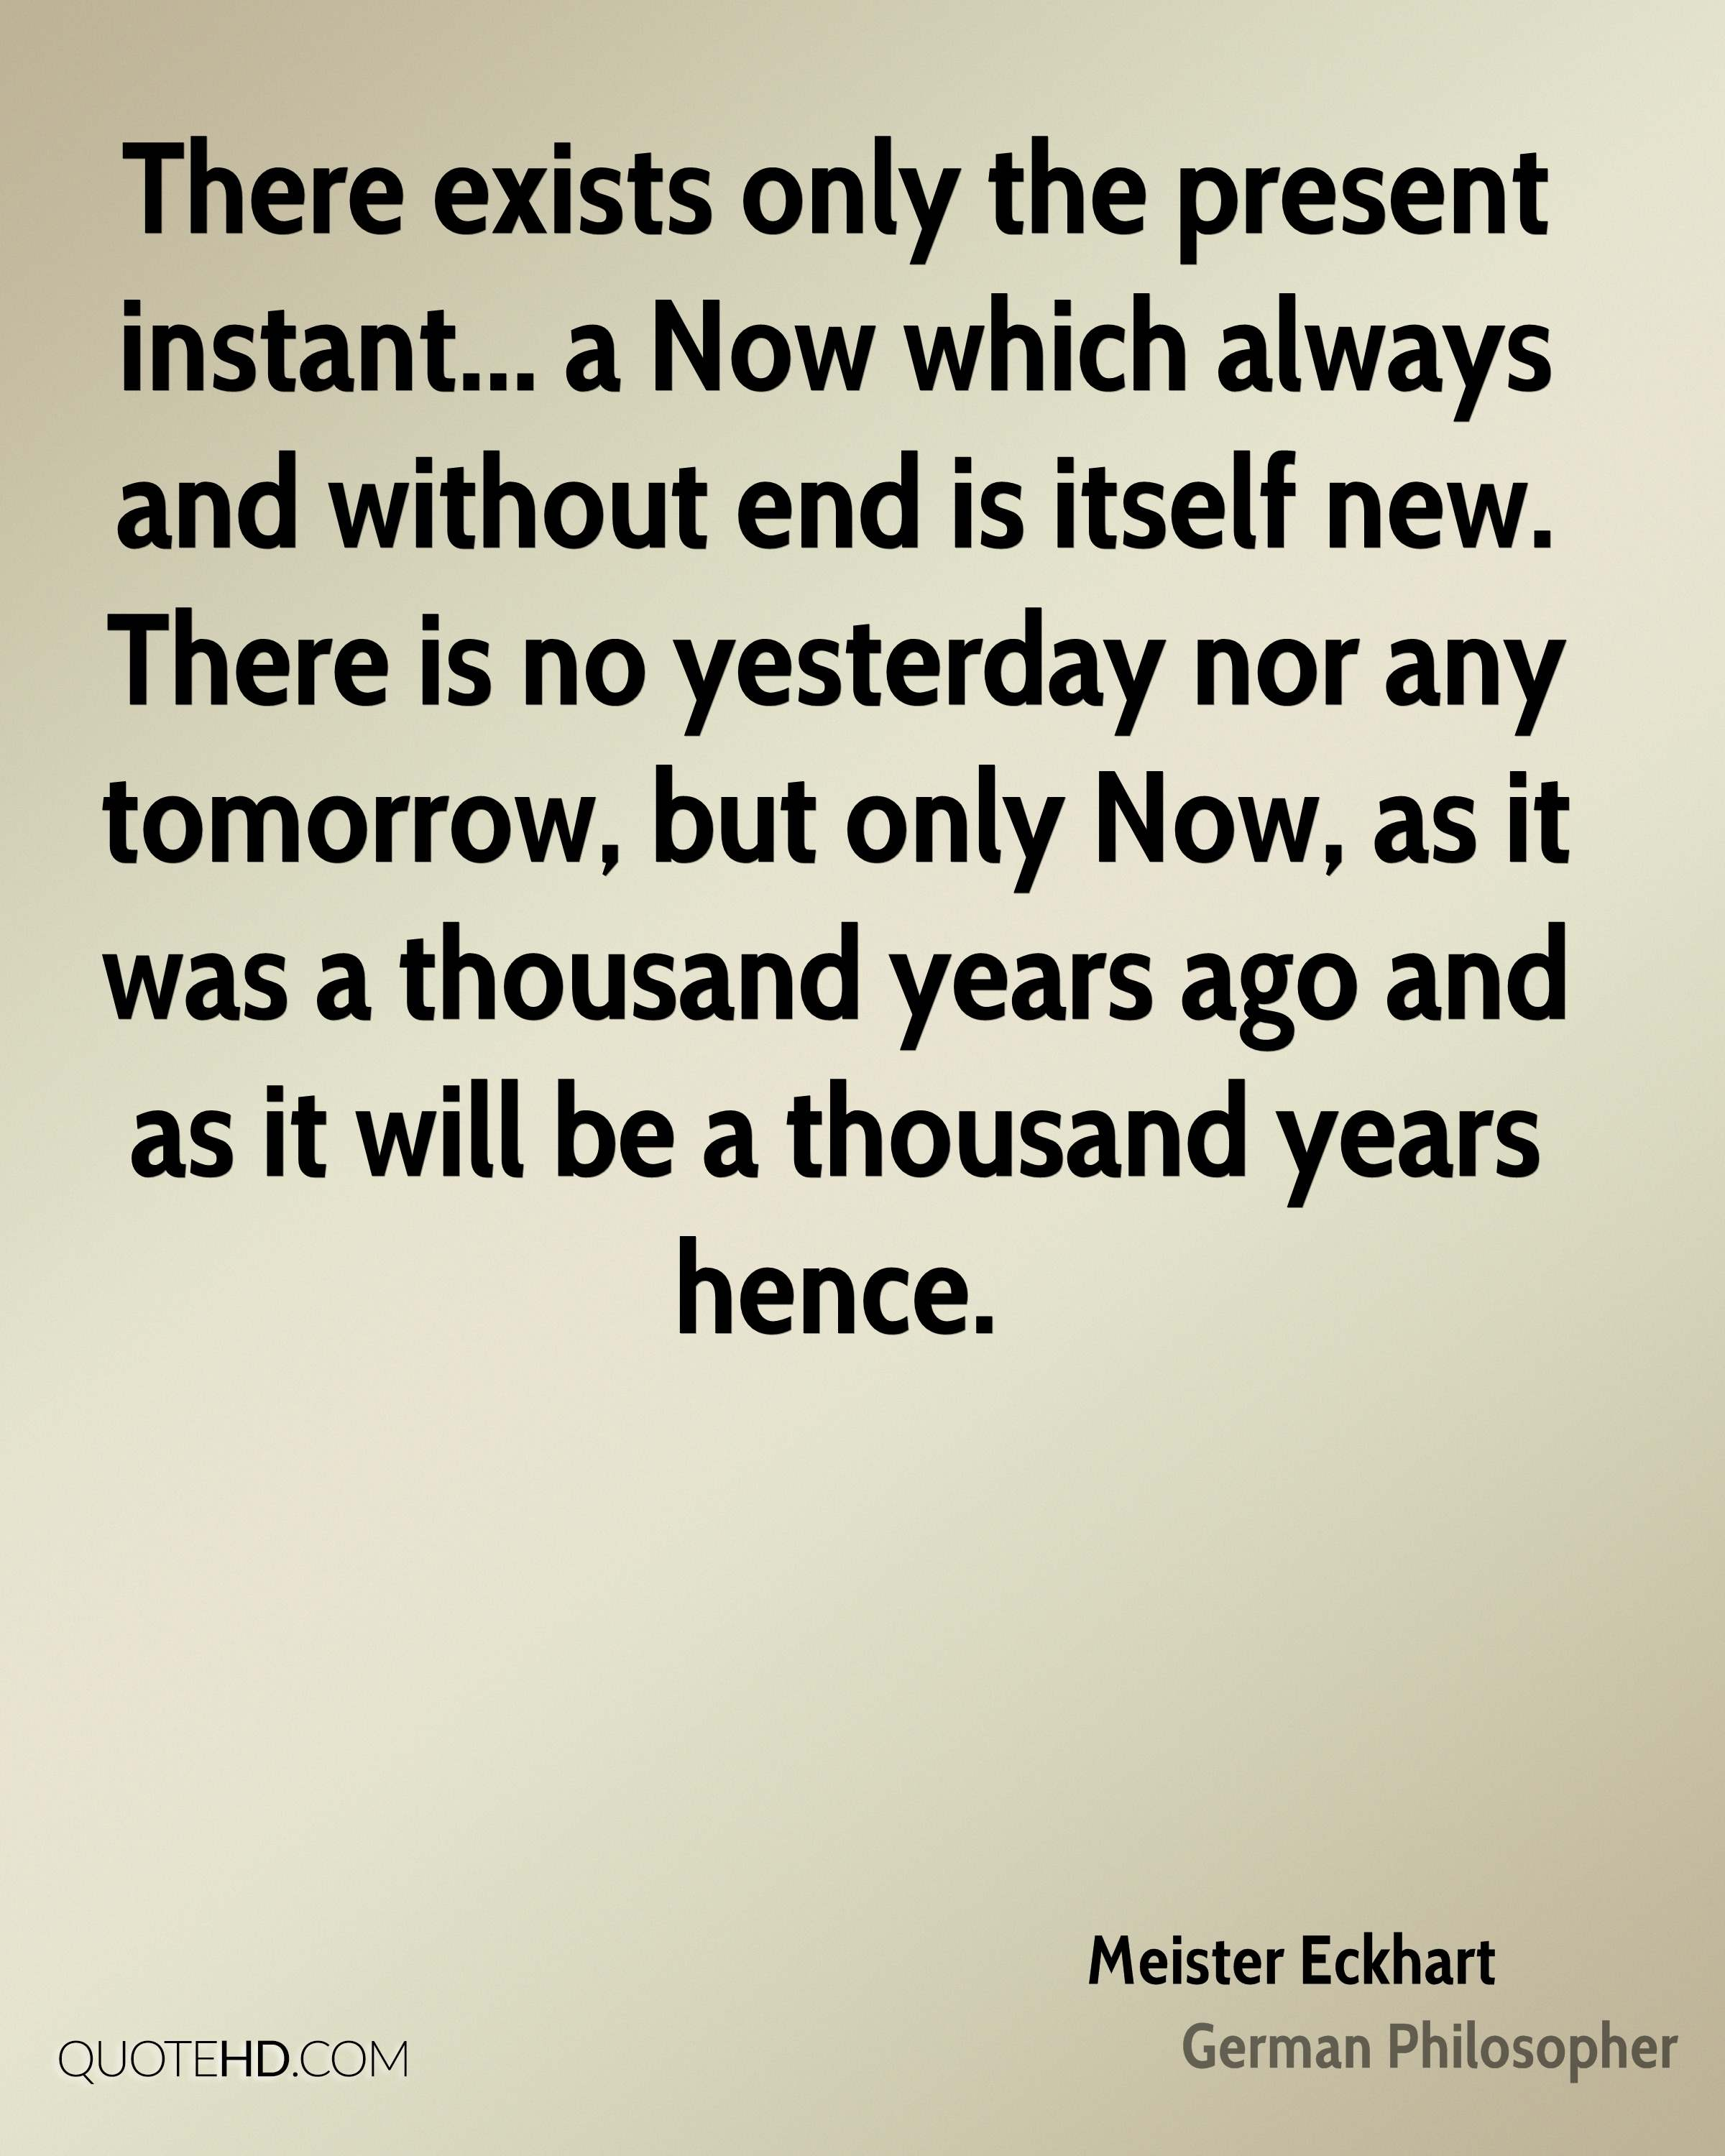 There exists only the present instant... a Now which always and without end is itself new. There is no yesterday nor any tomorrow, but only Now, as it was a thousand years ago and as it will be a thousand years hence.